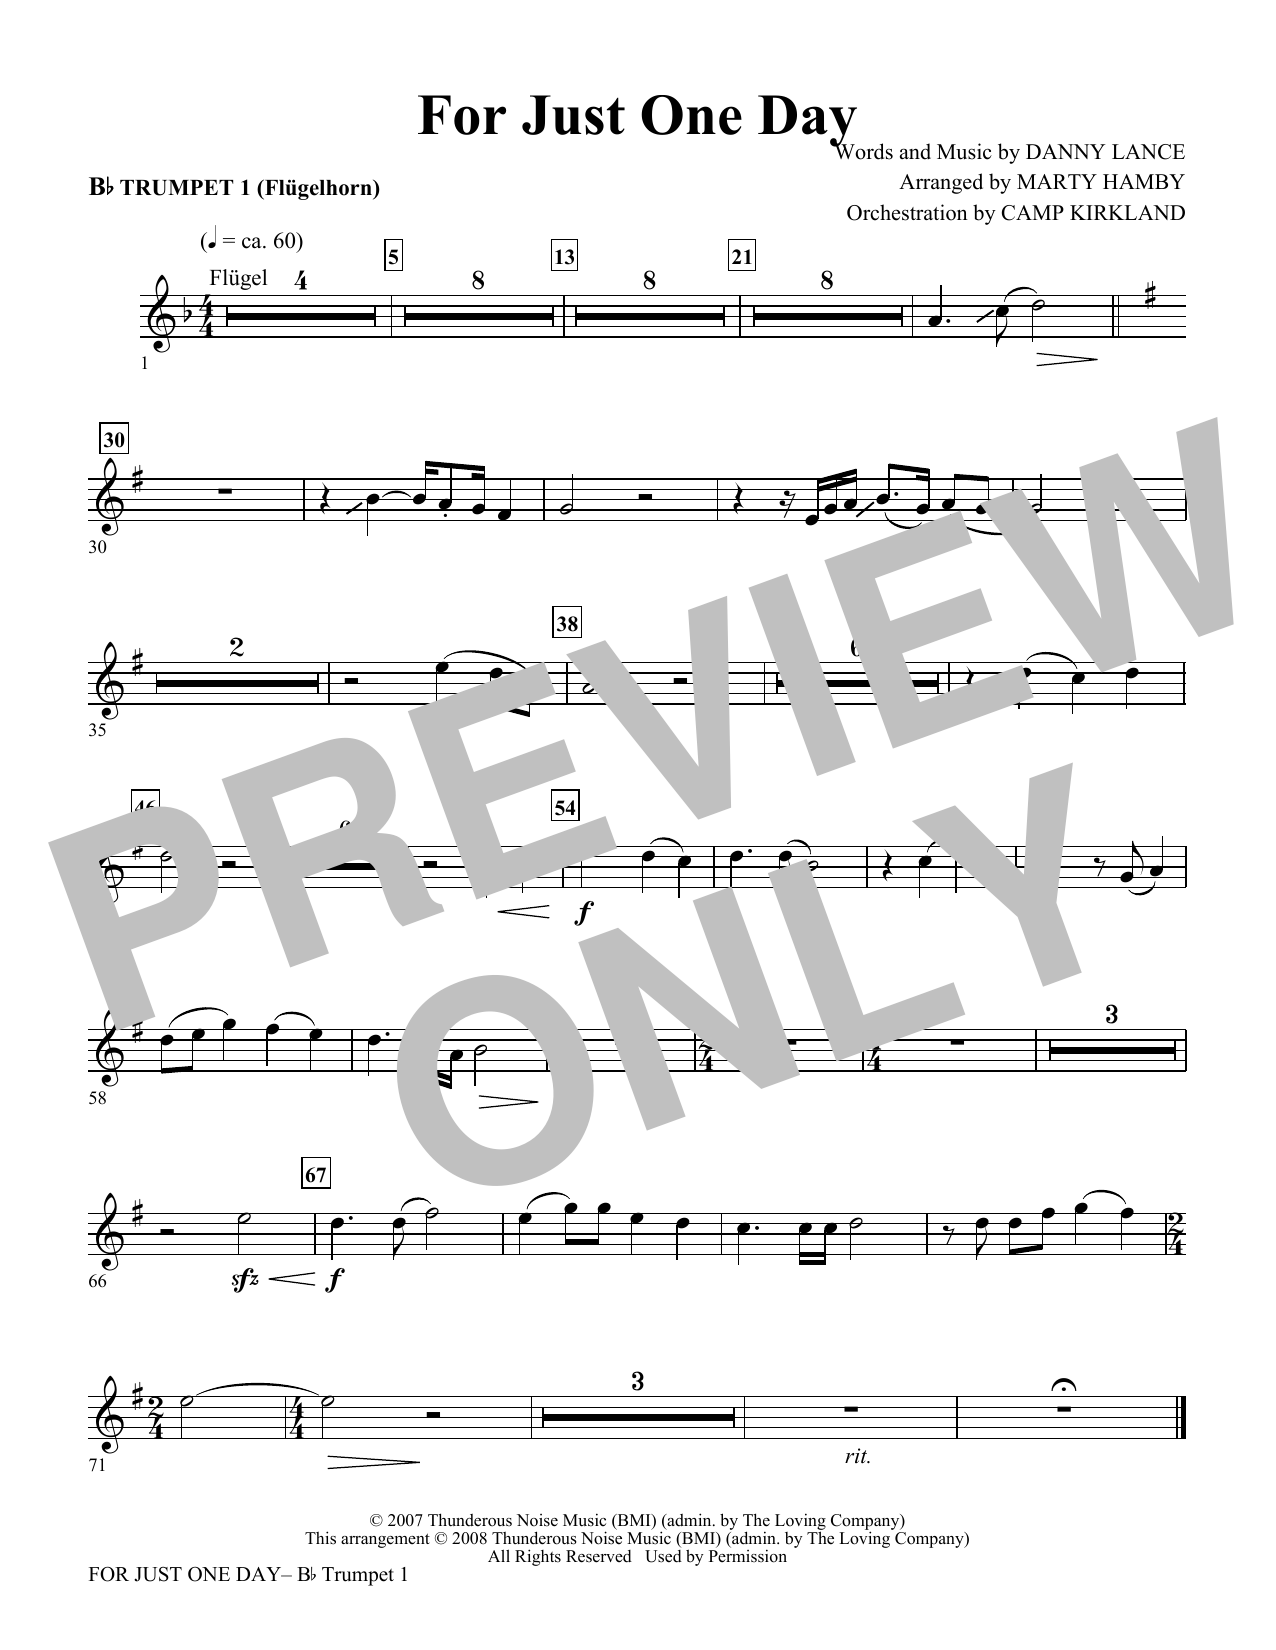 For Just One Day - Trumpet 1 Sheet Music